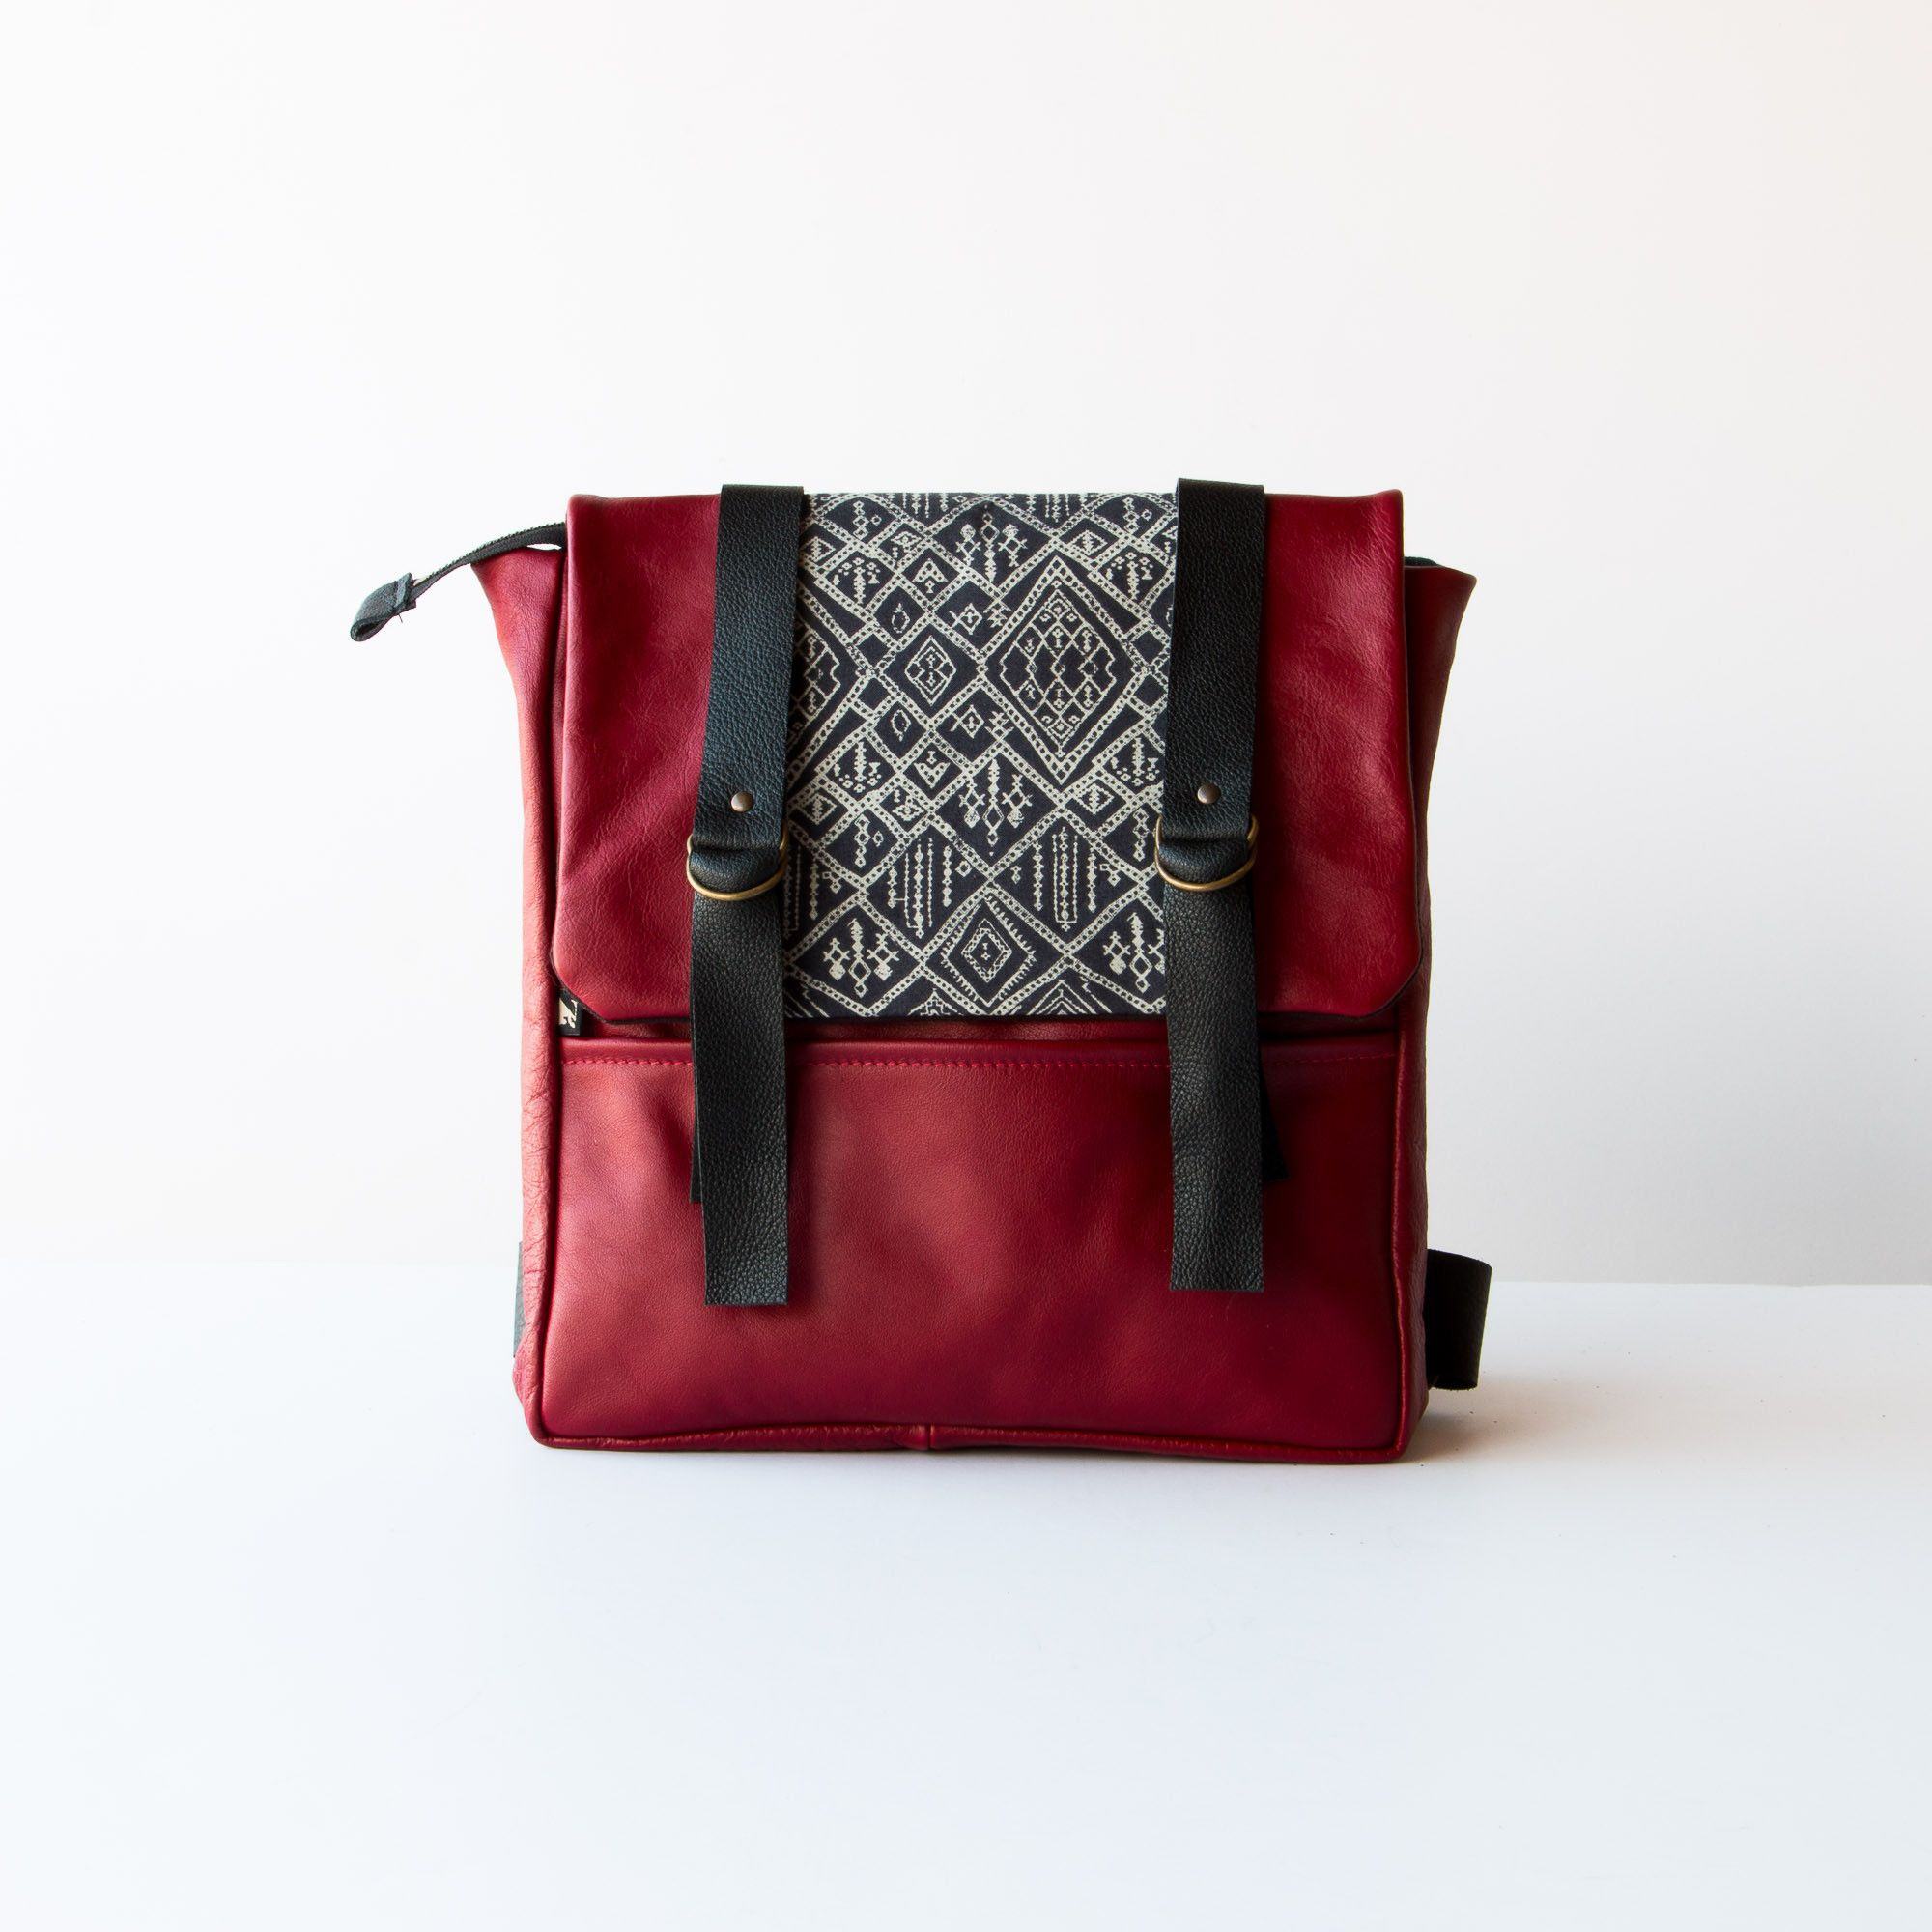 This ravishing backpack is made of recycled leather with a geometric pattern in cotton canvas. It closes with a large clasp and two snaps. It has two pockets: an open pocket inside and a closed pocket with a zipper on the outside. The backpack is transformed into a shoulder bag thanks to its press button system.